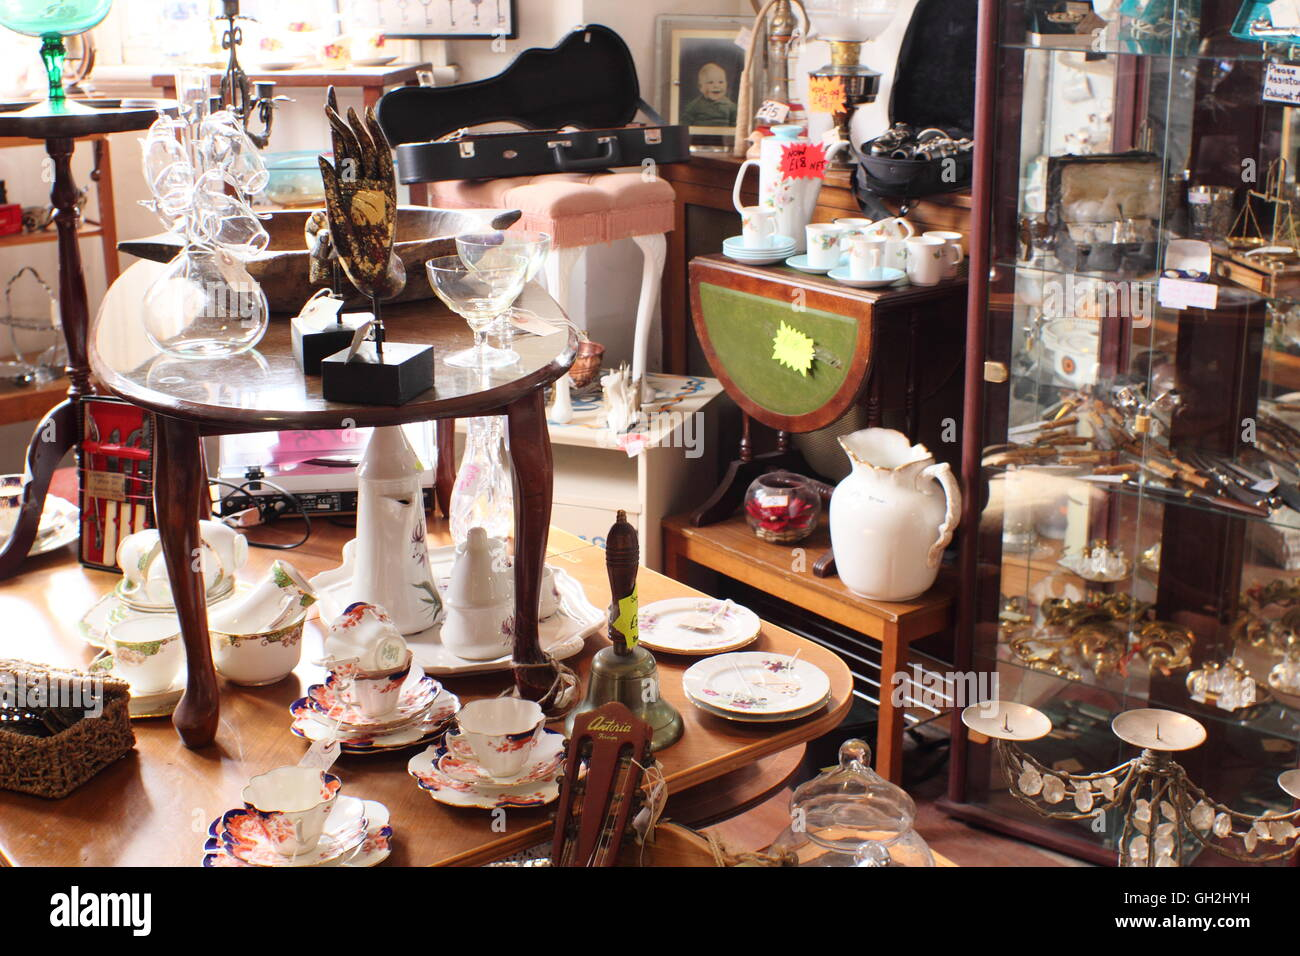 An eclectic mix of items on sale in The Vaults, a vintage, shabby chic and craft centre in Sheffield Antiques Quarter - Stock Image